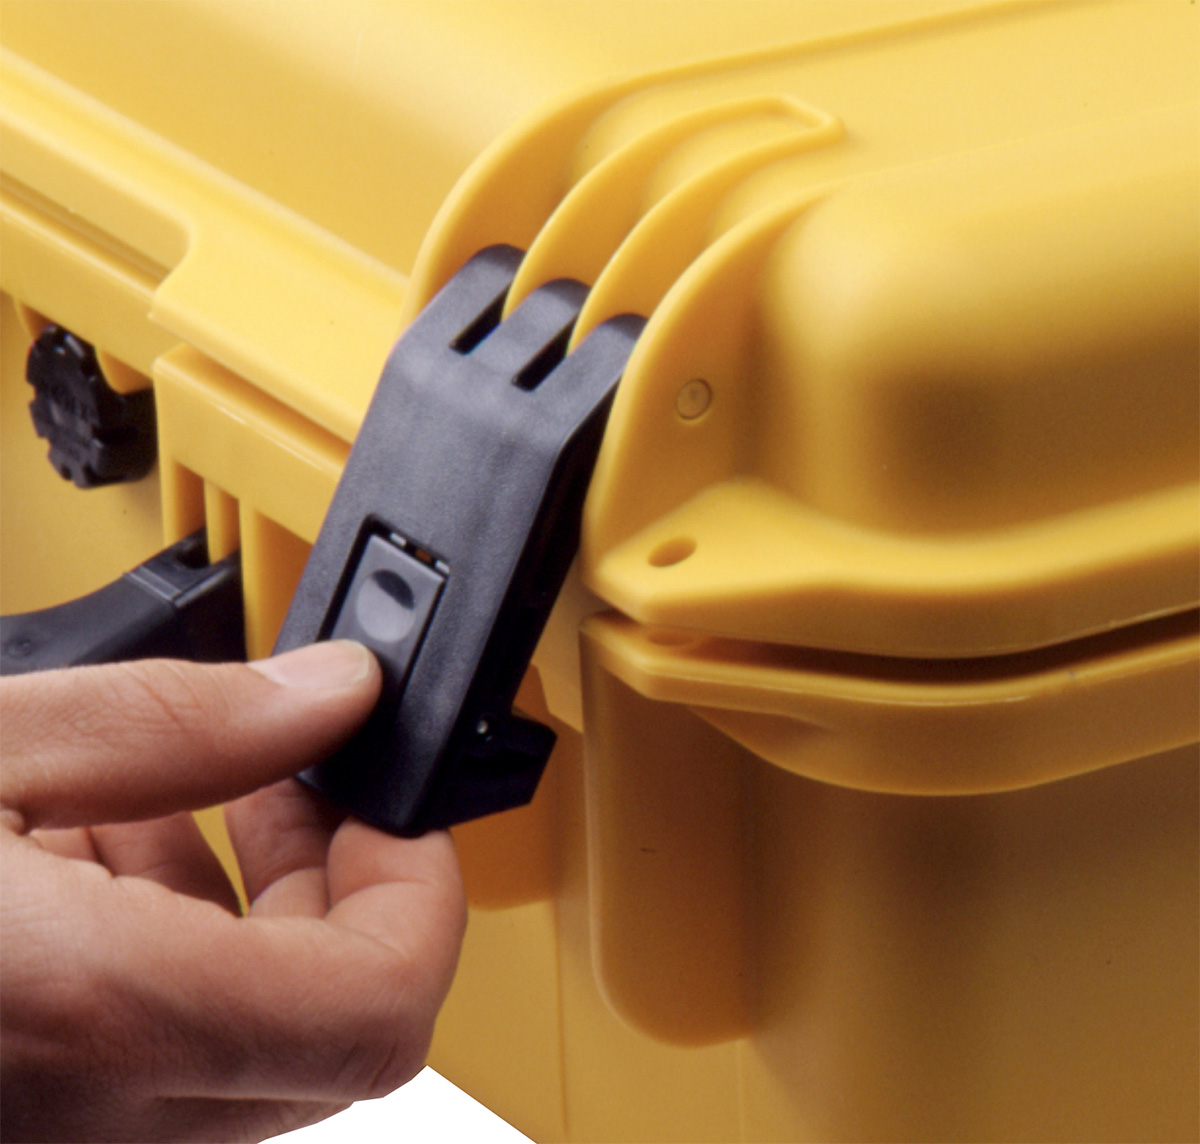 pelican peli products storm hard cases press pull latches hardigg hardcase